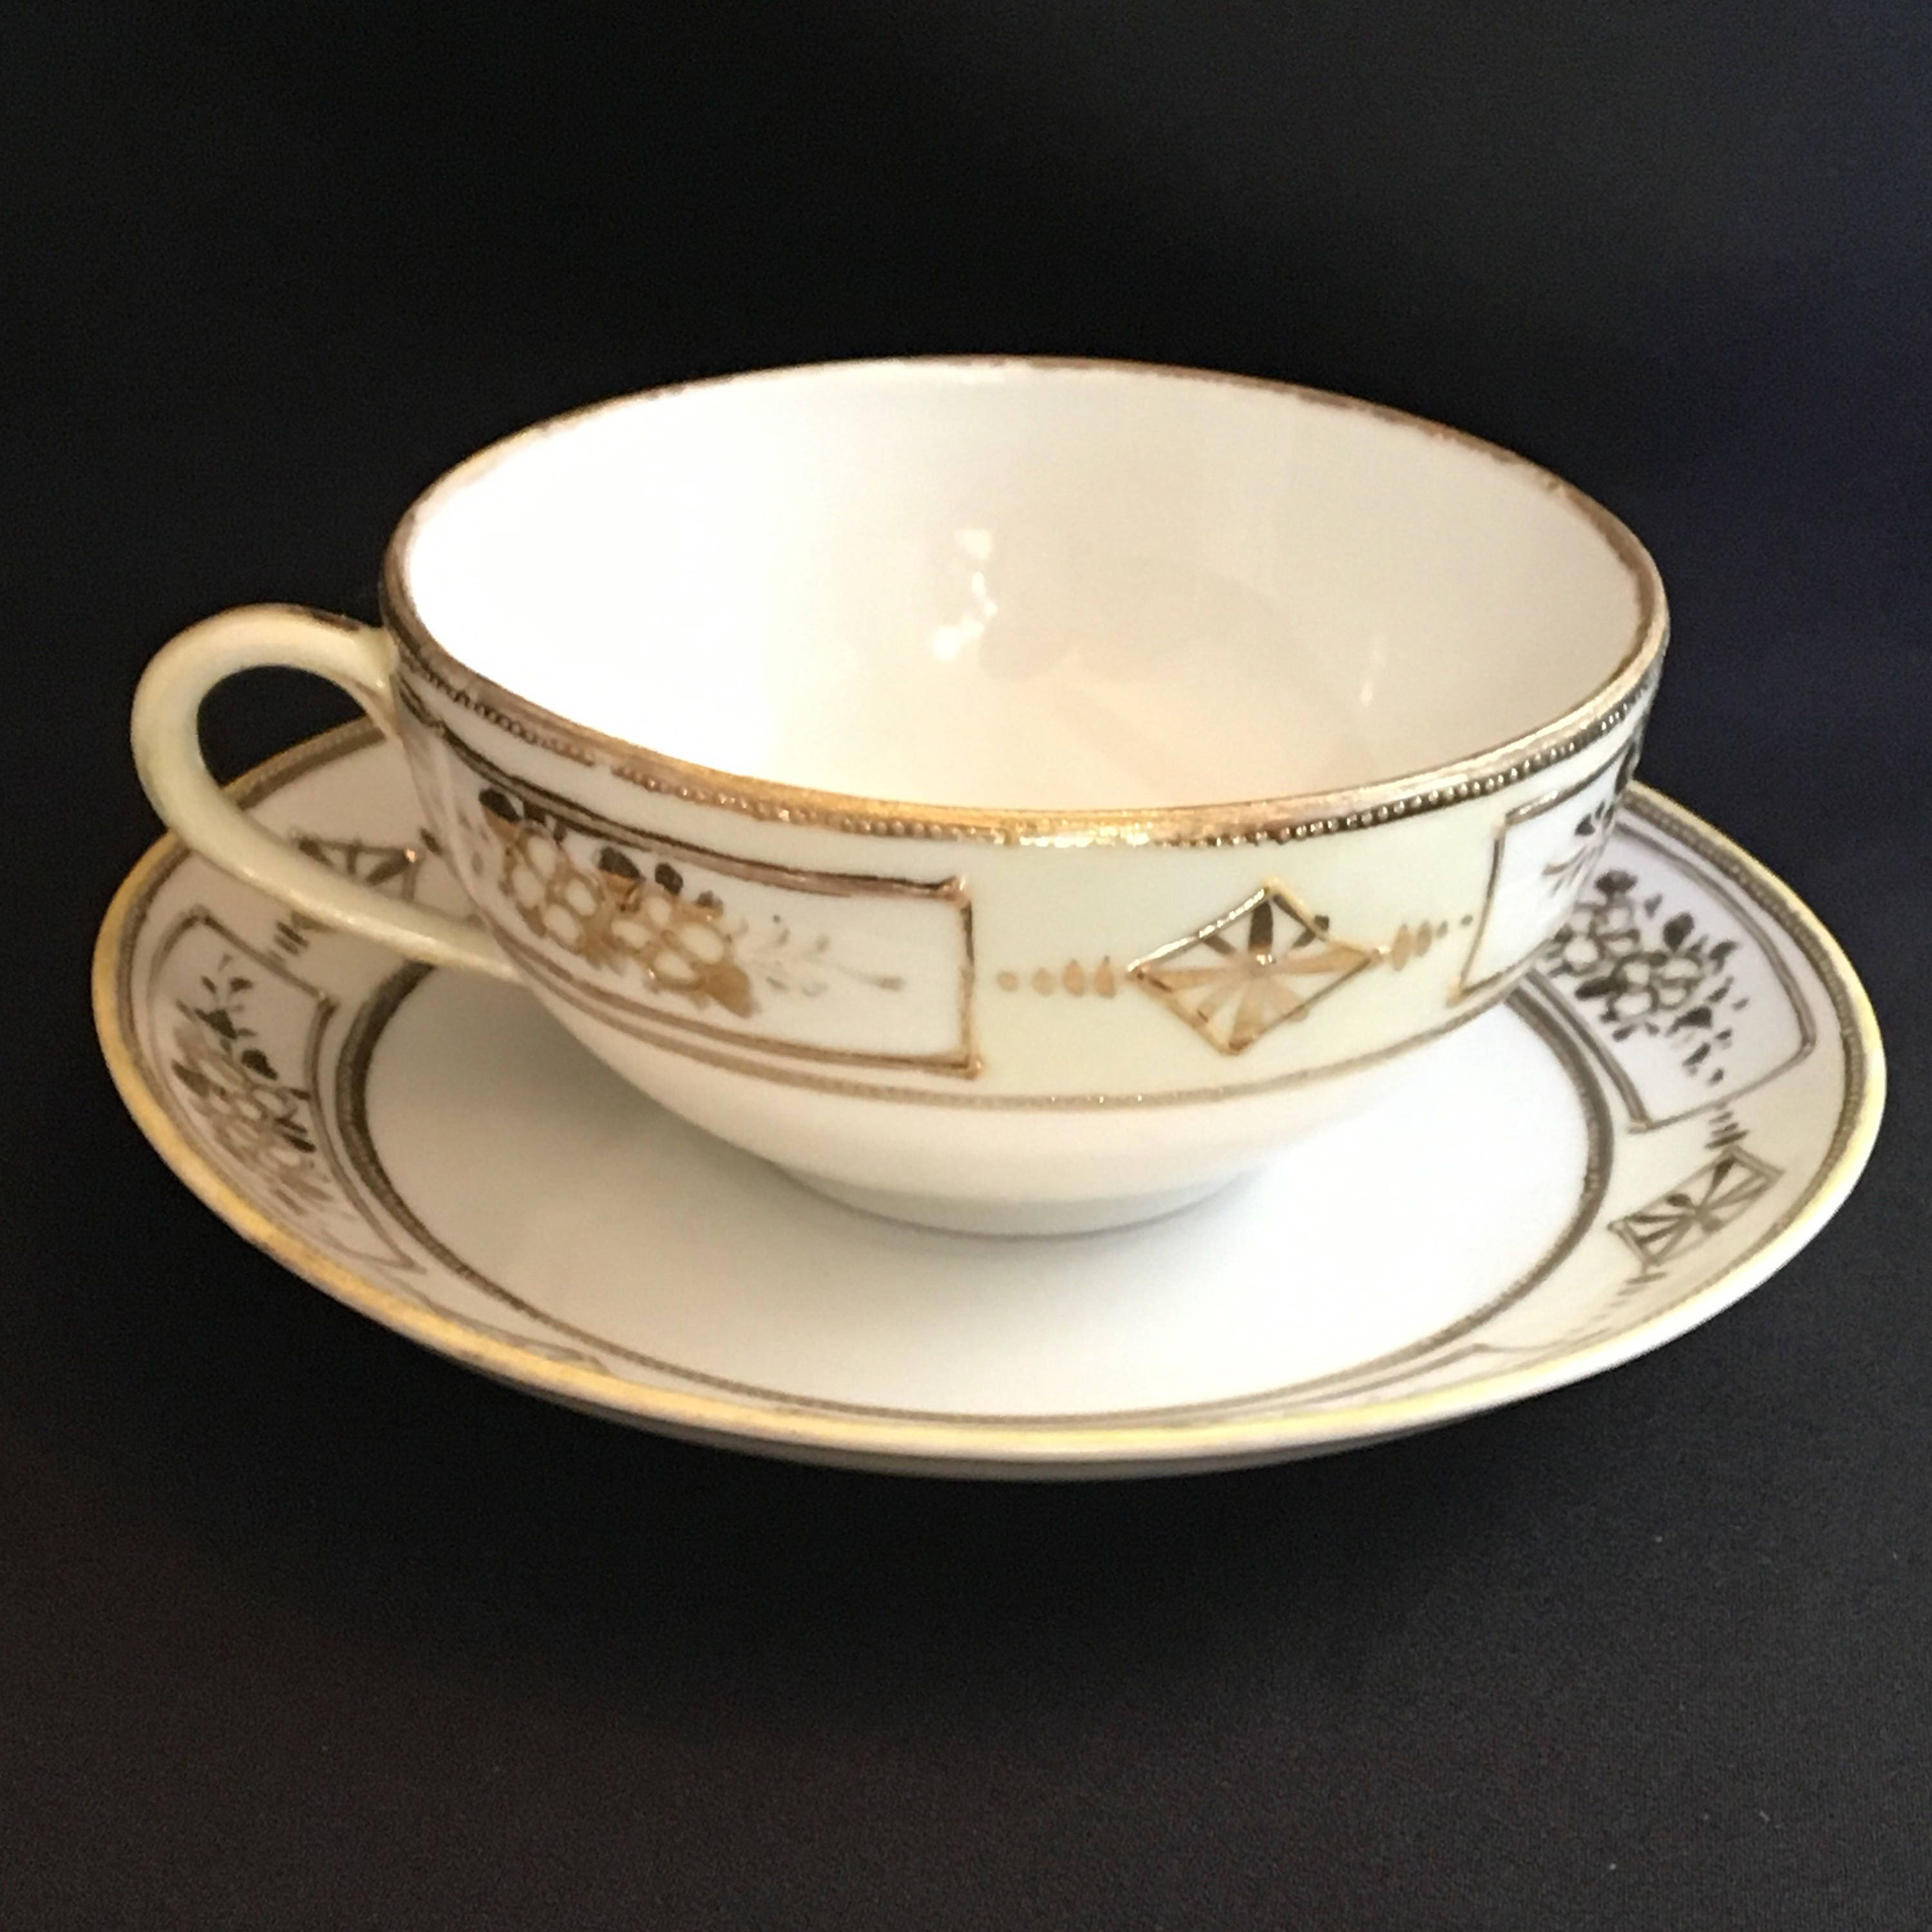 Vintage 1940 era handpainted Japanese porcelain raised gilded cup and saucer